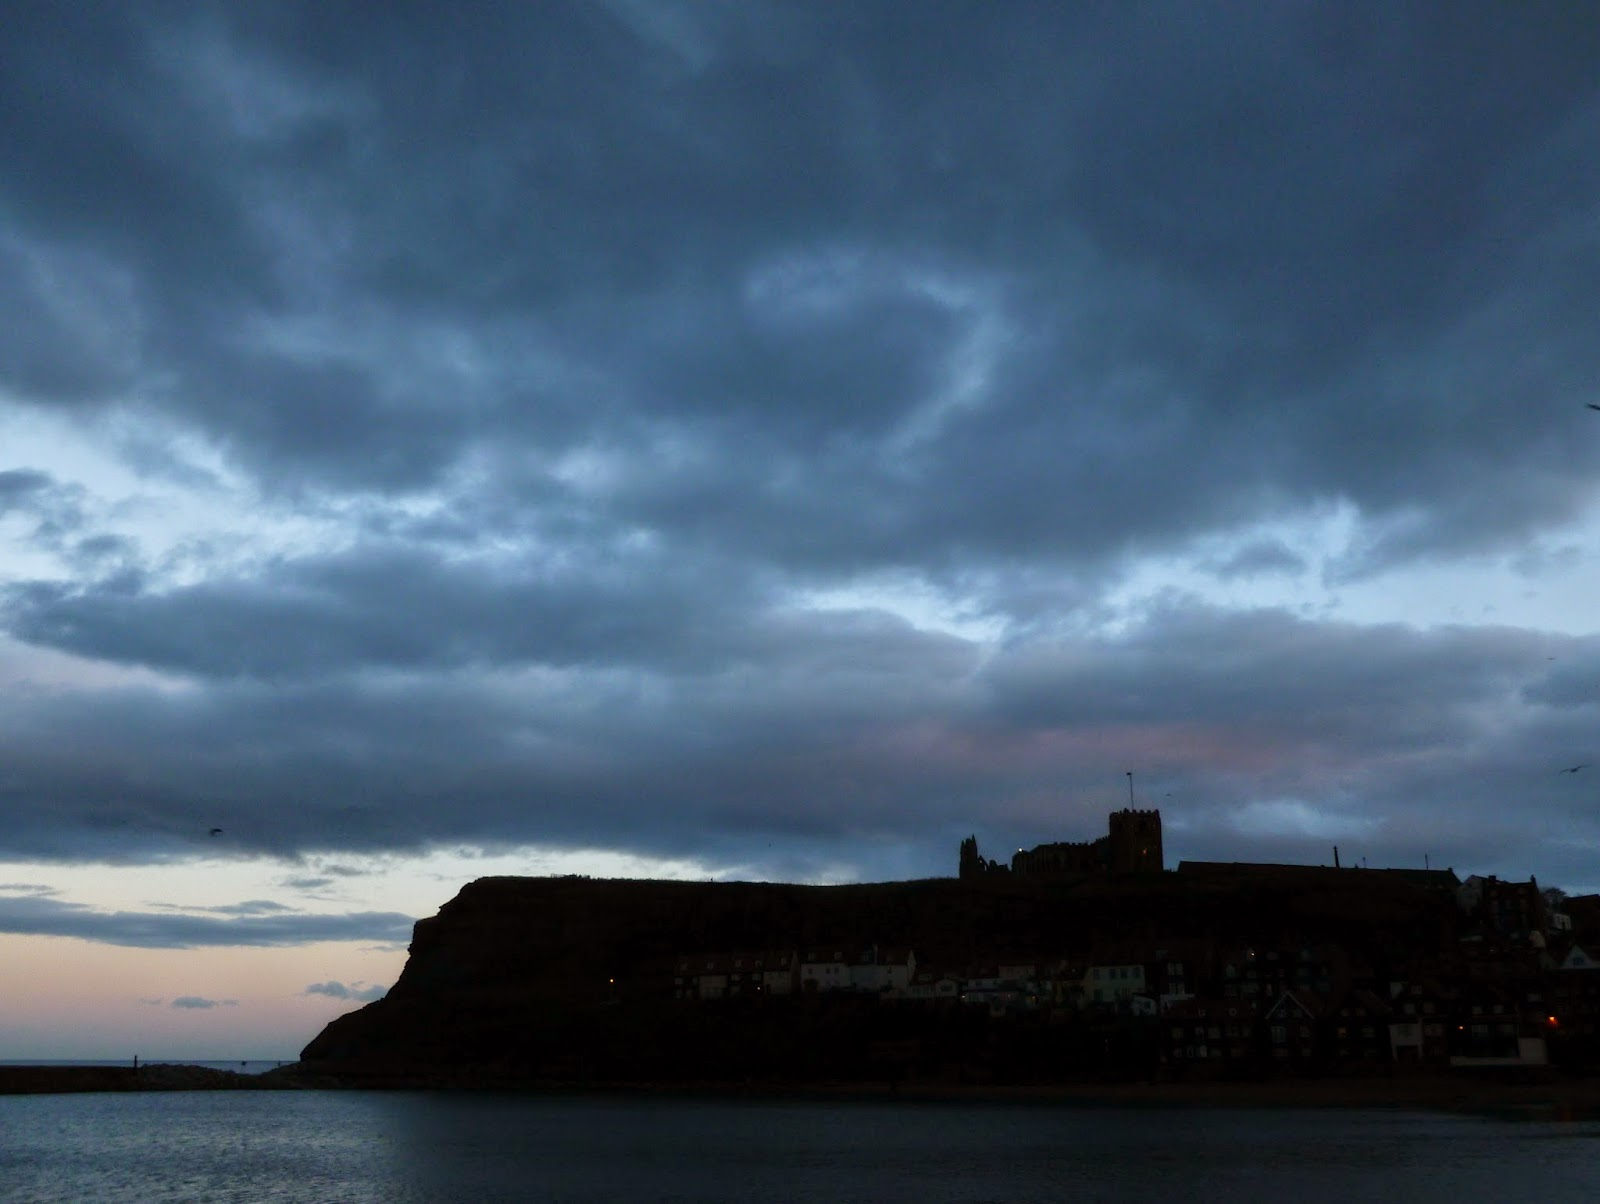 Whitby Abbey at dusk